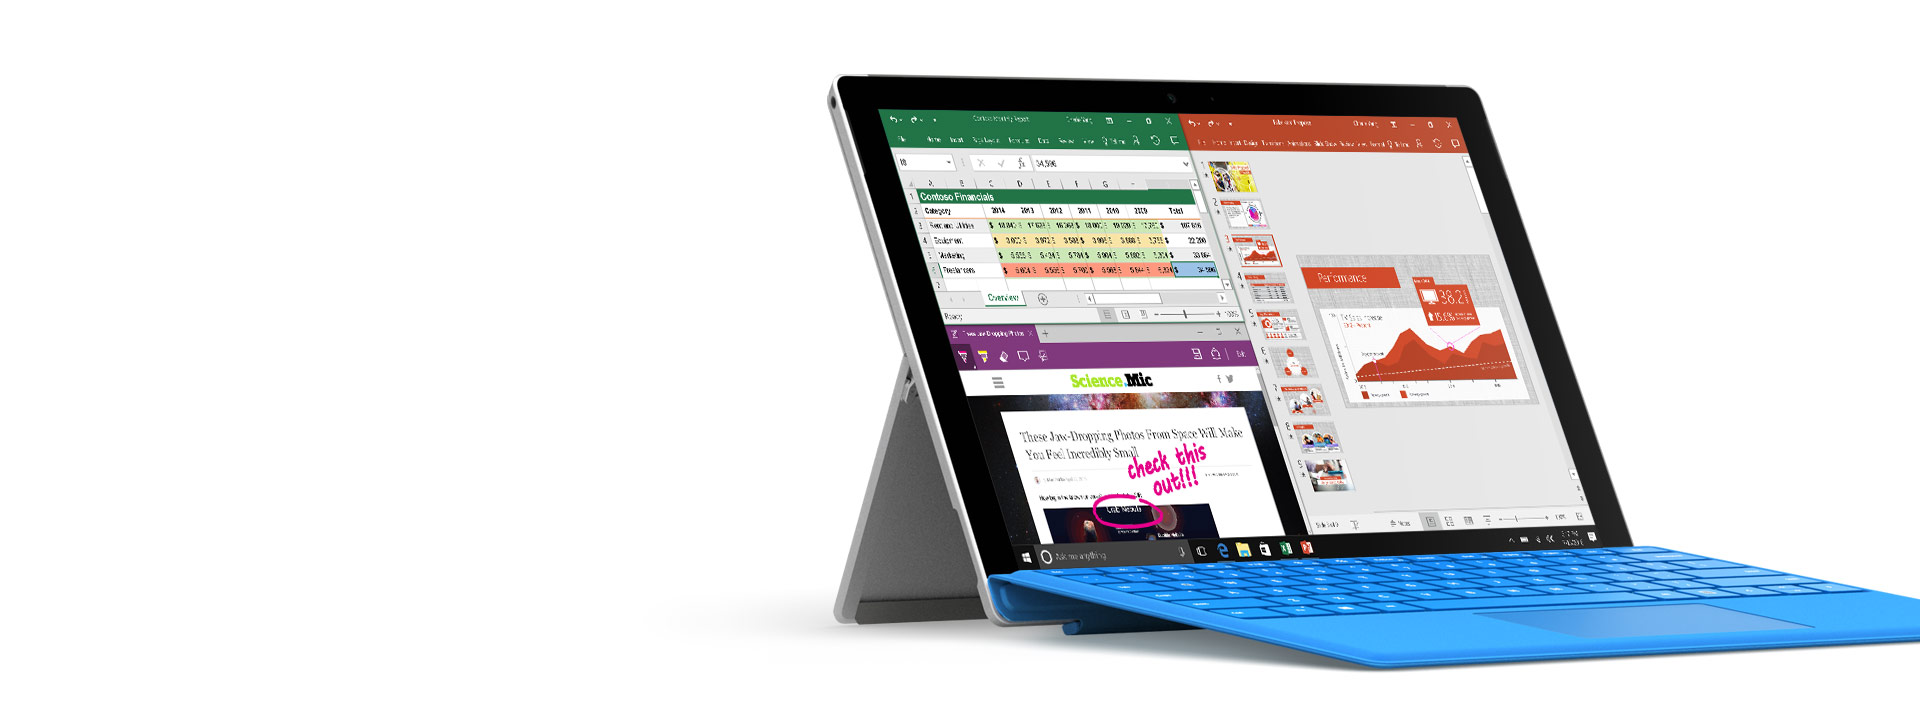 Surface Pro 4 with Office applications open on screen displaying inking capability